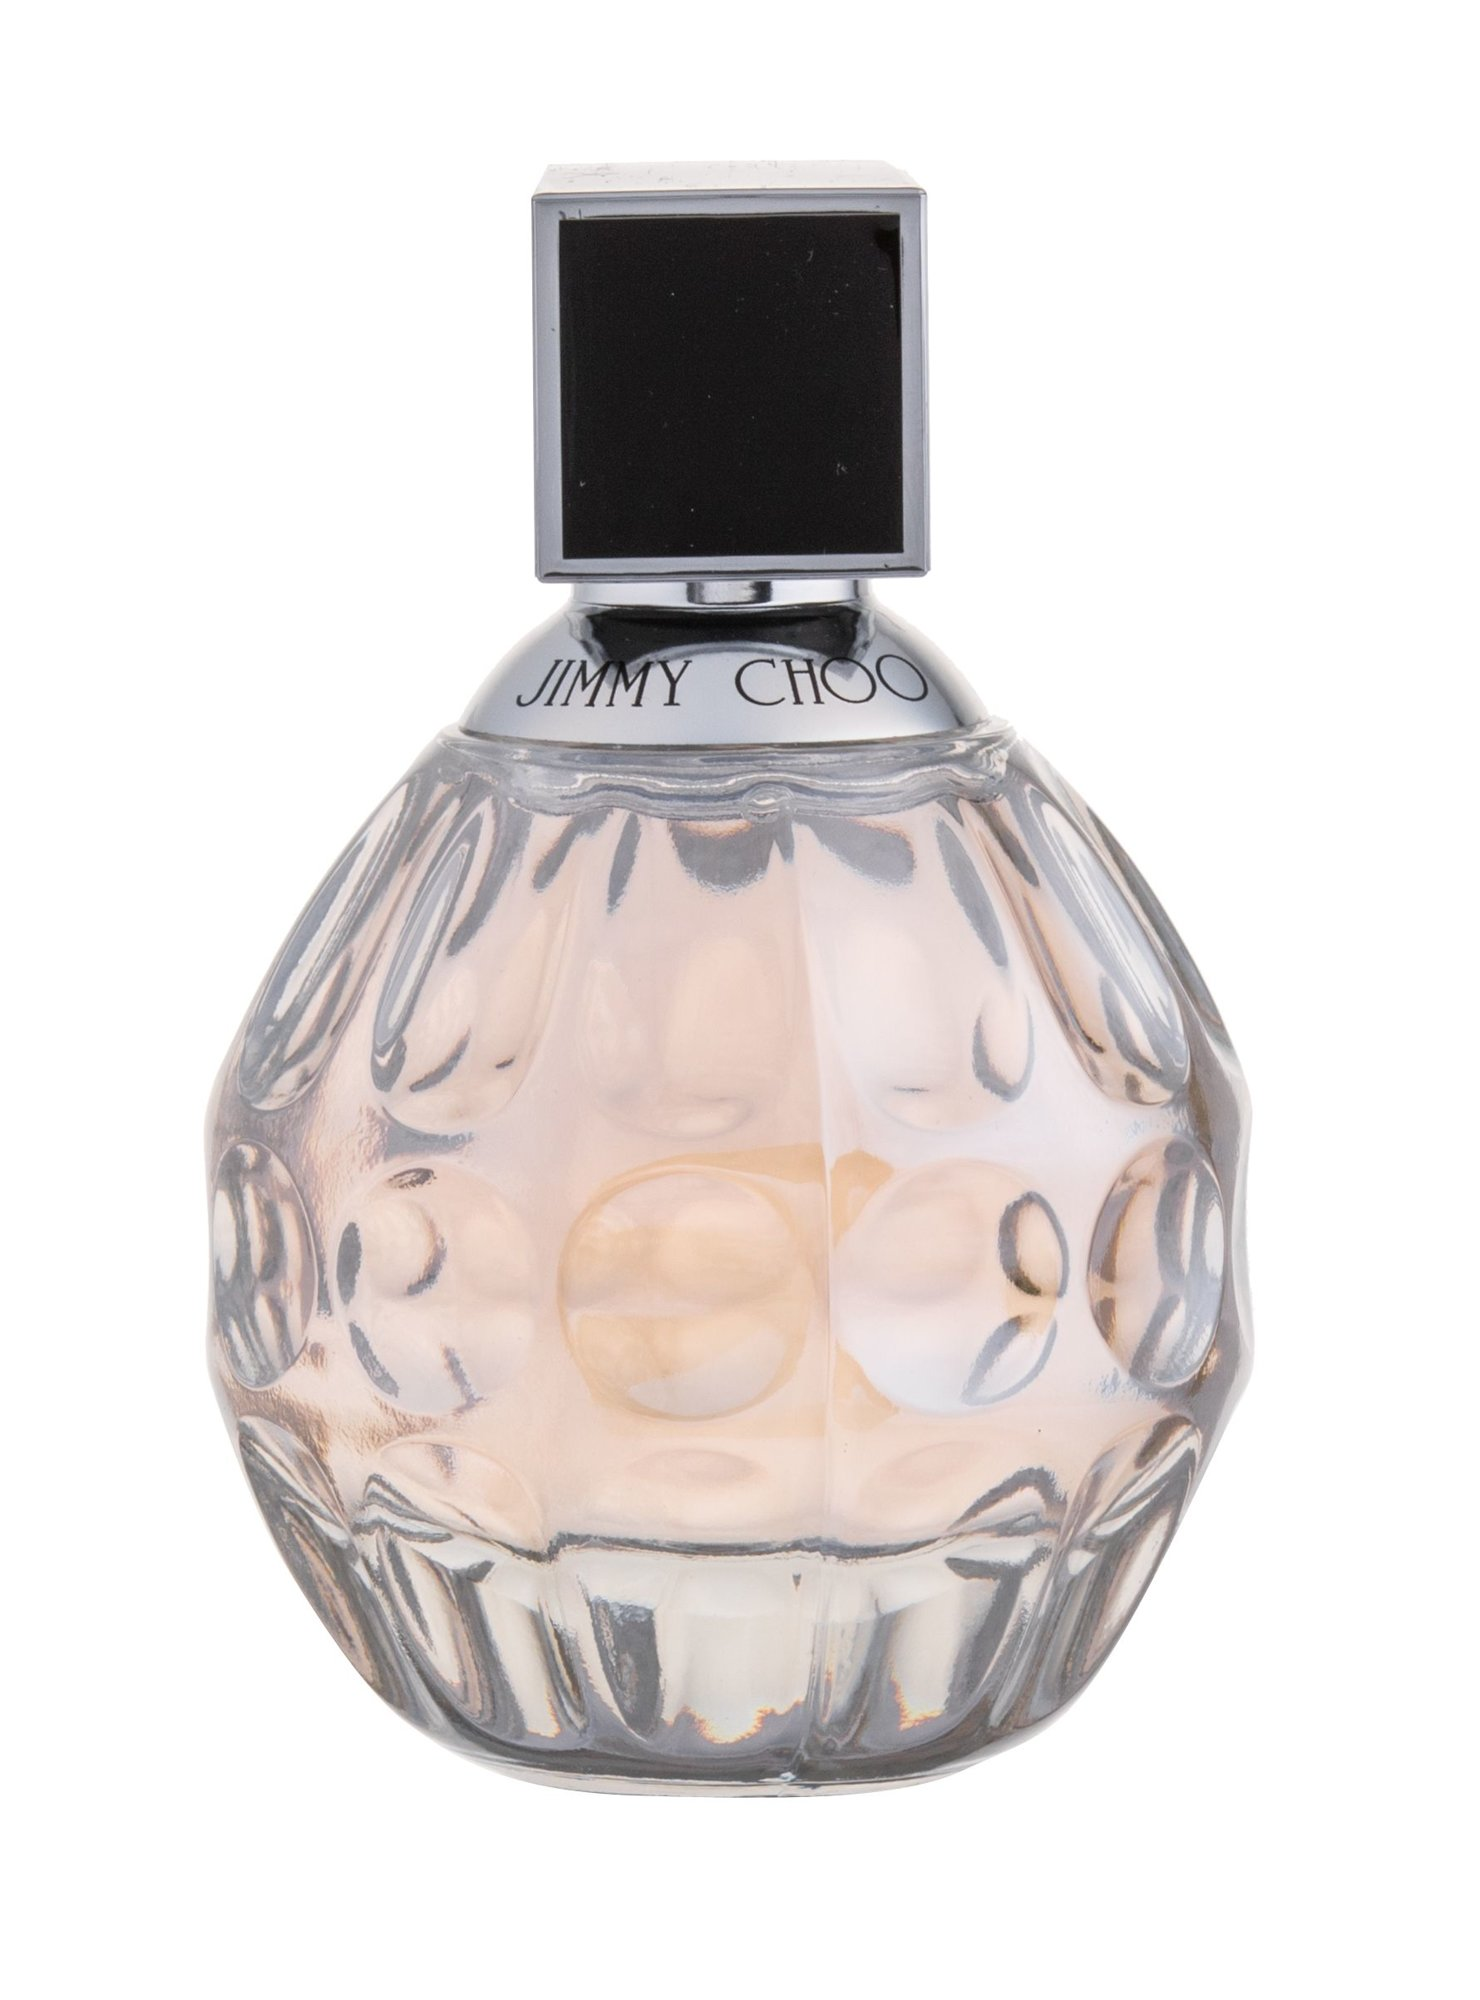 Jimmy Choo Jimmy Choo EDT 60ml